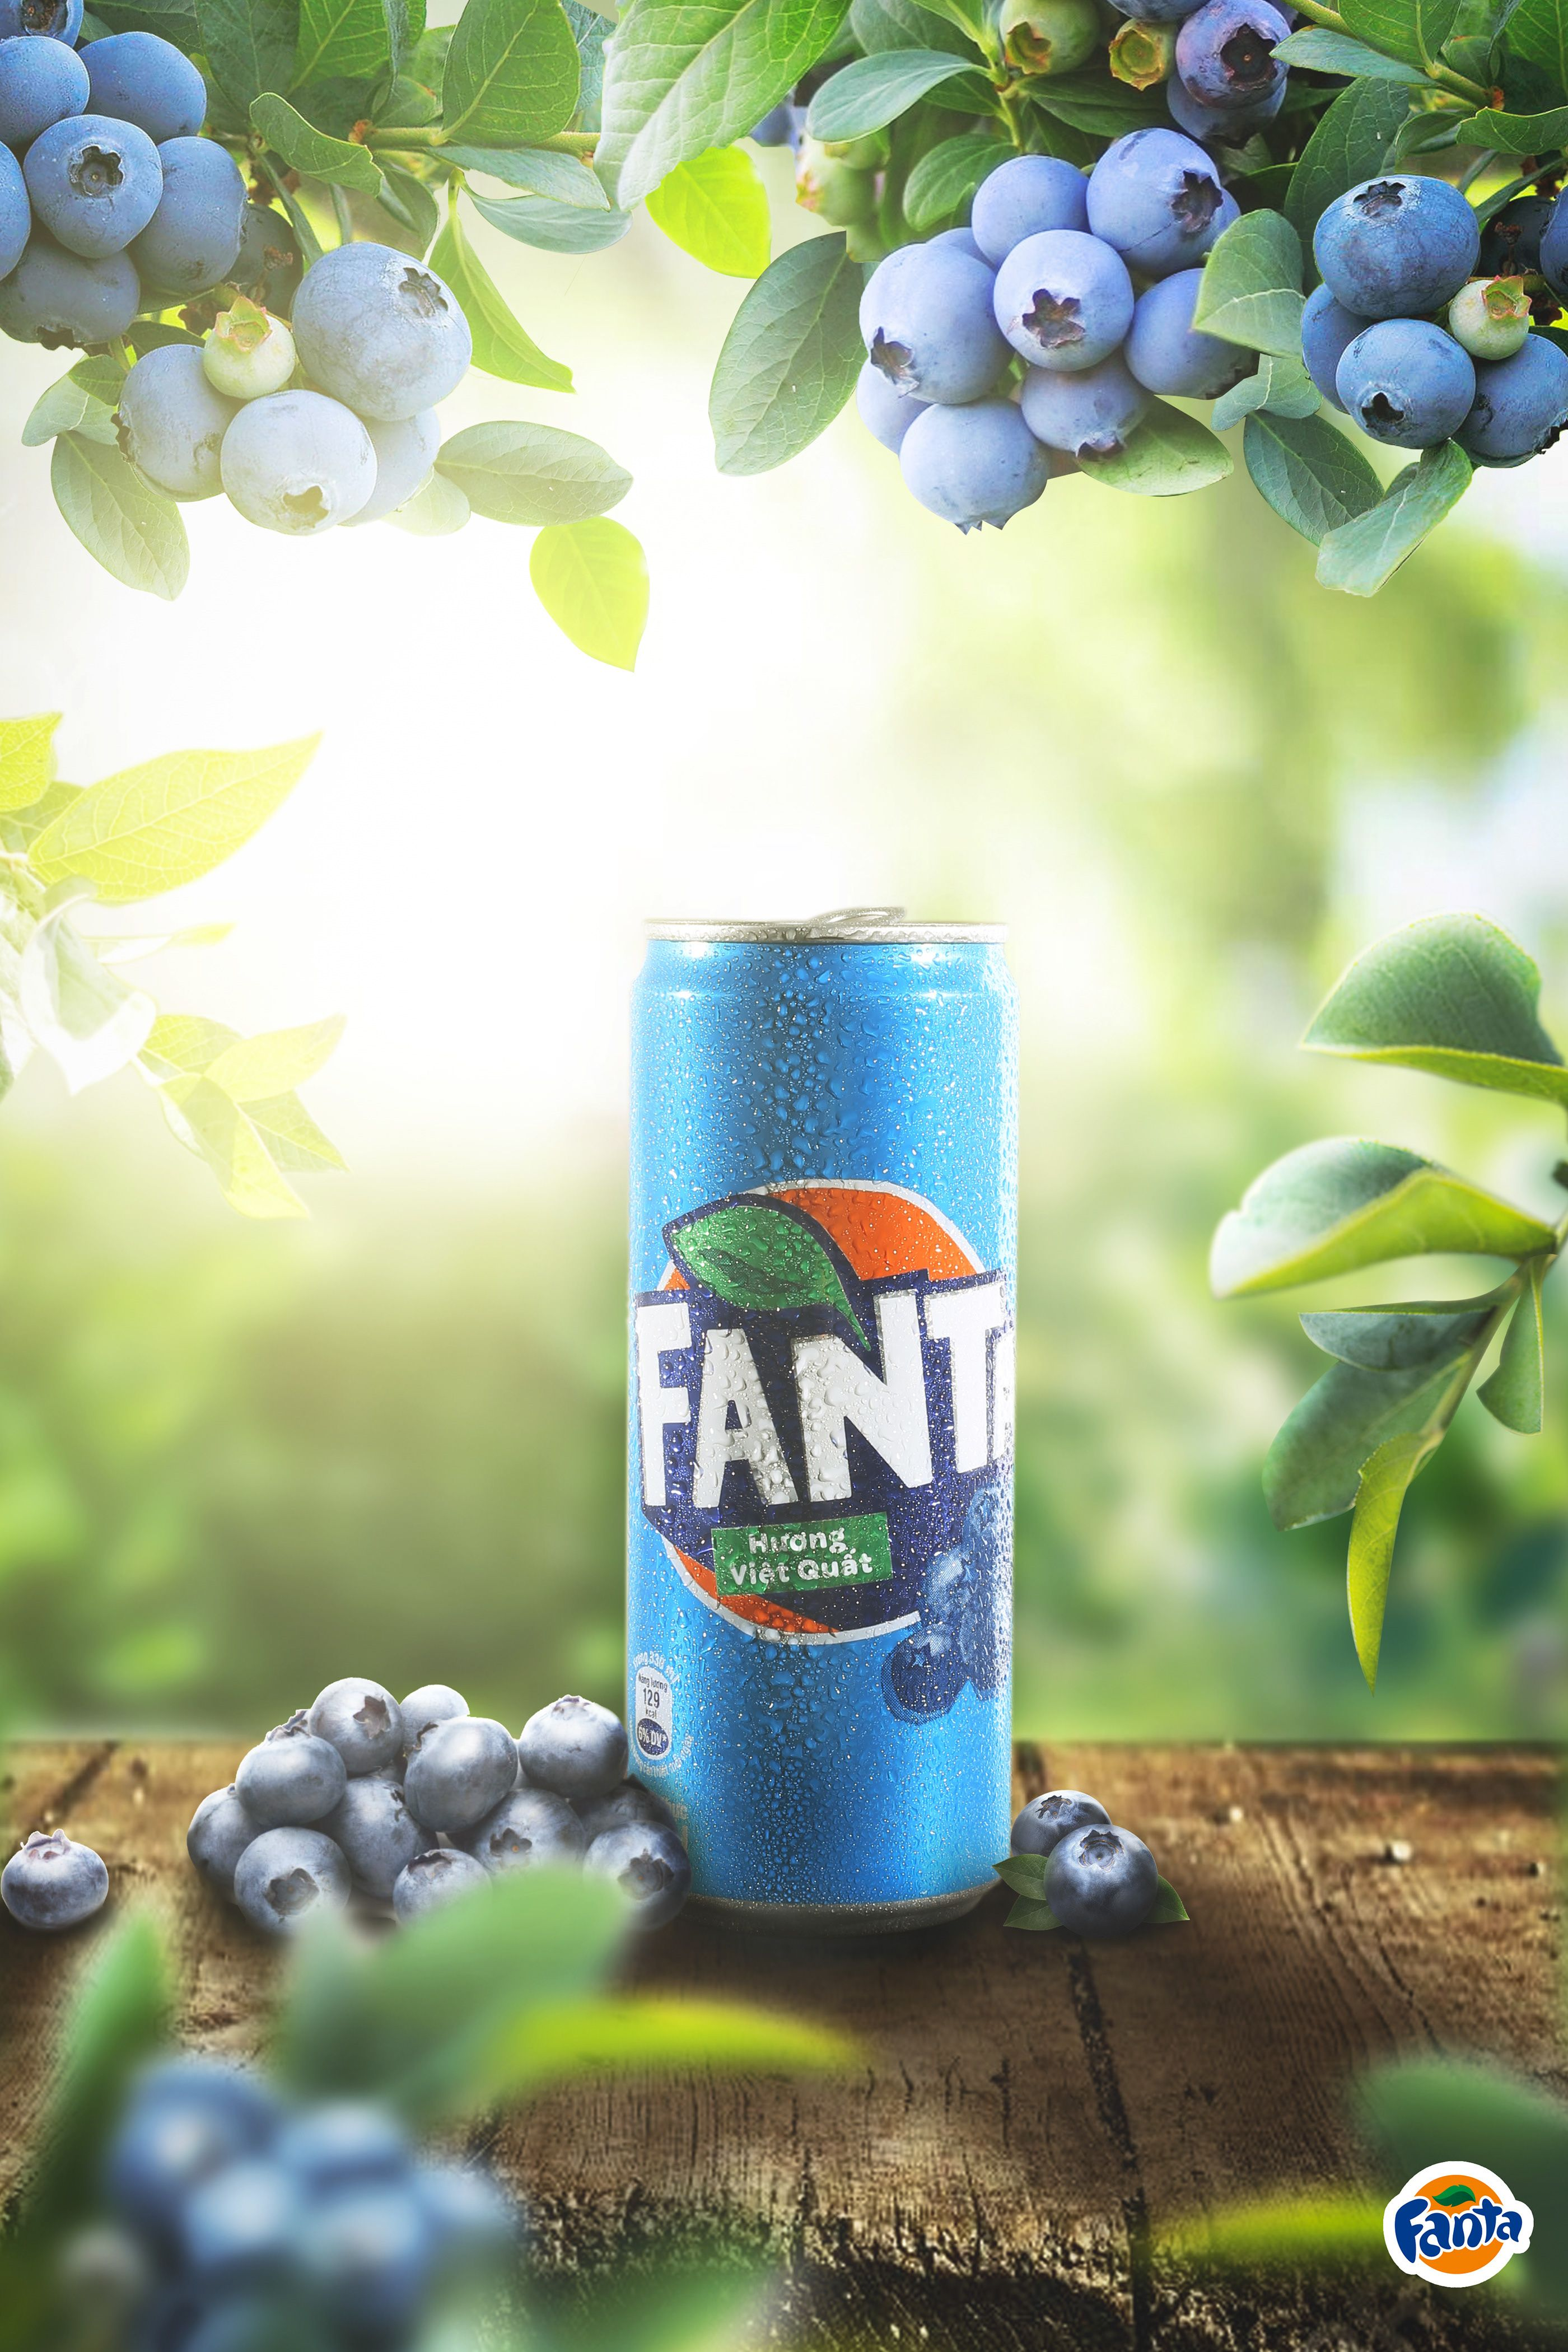 Blueberry Fanta Package Poster Design in 2020 | Photoshop ...